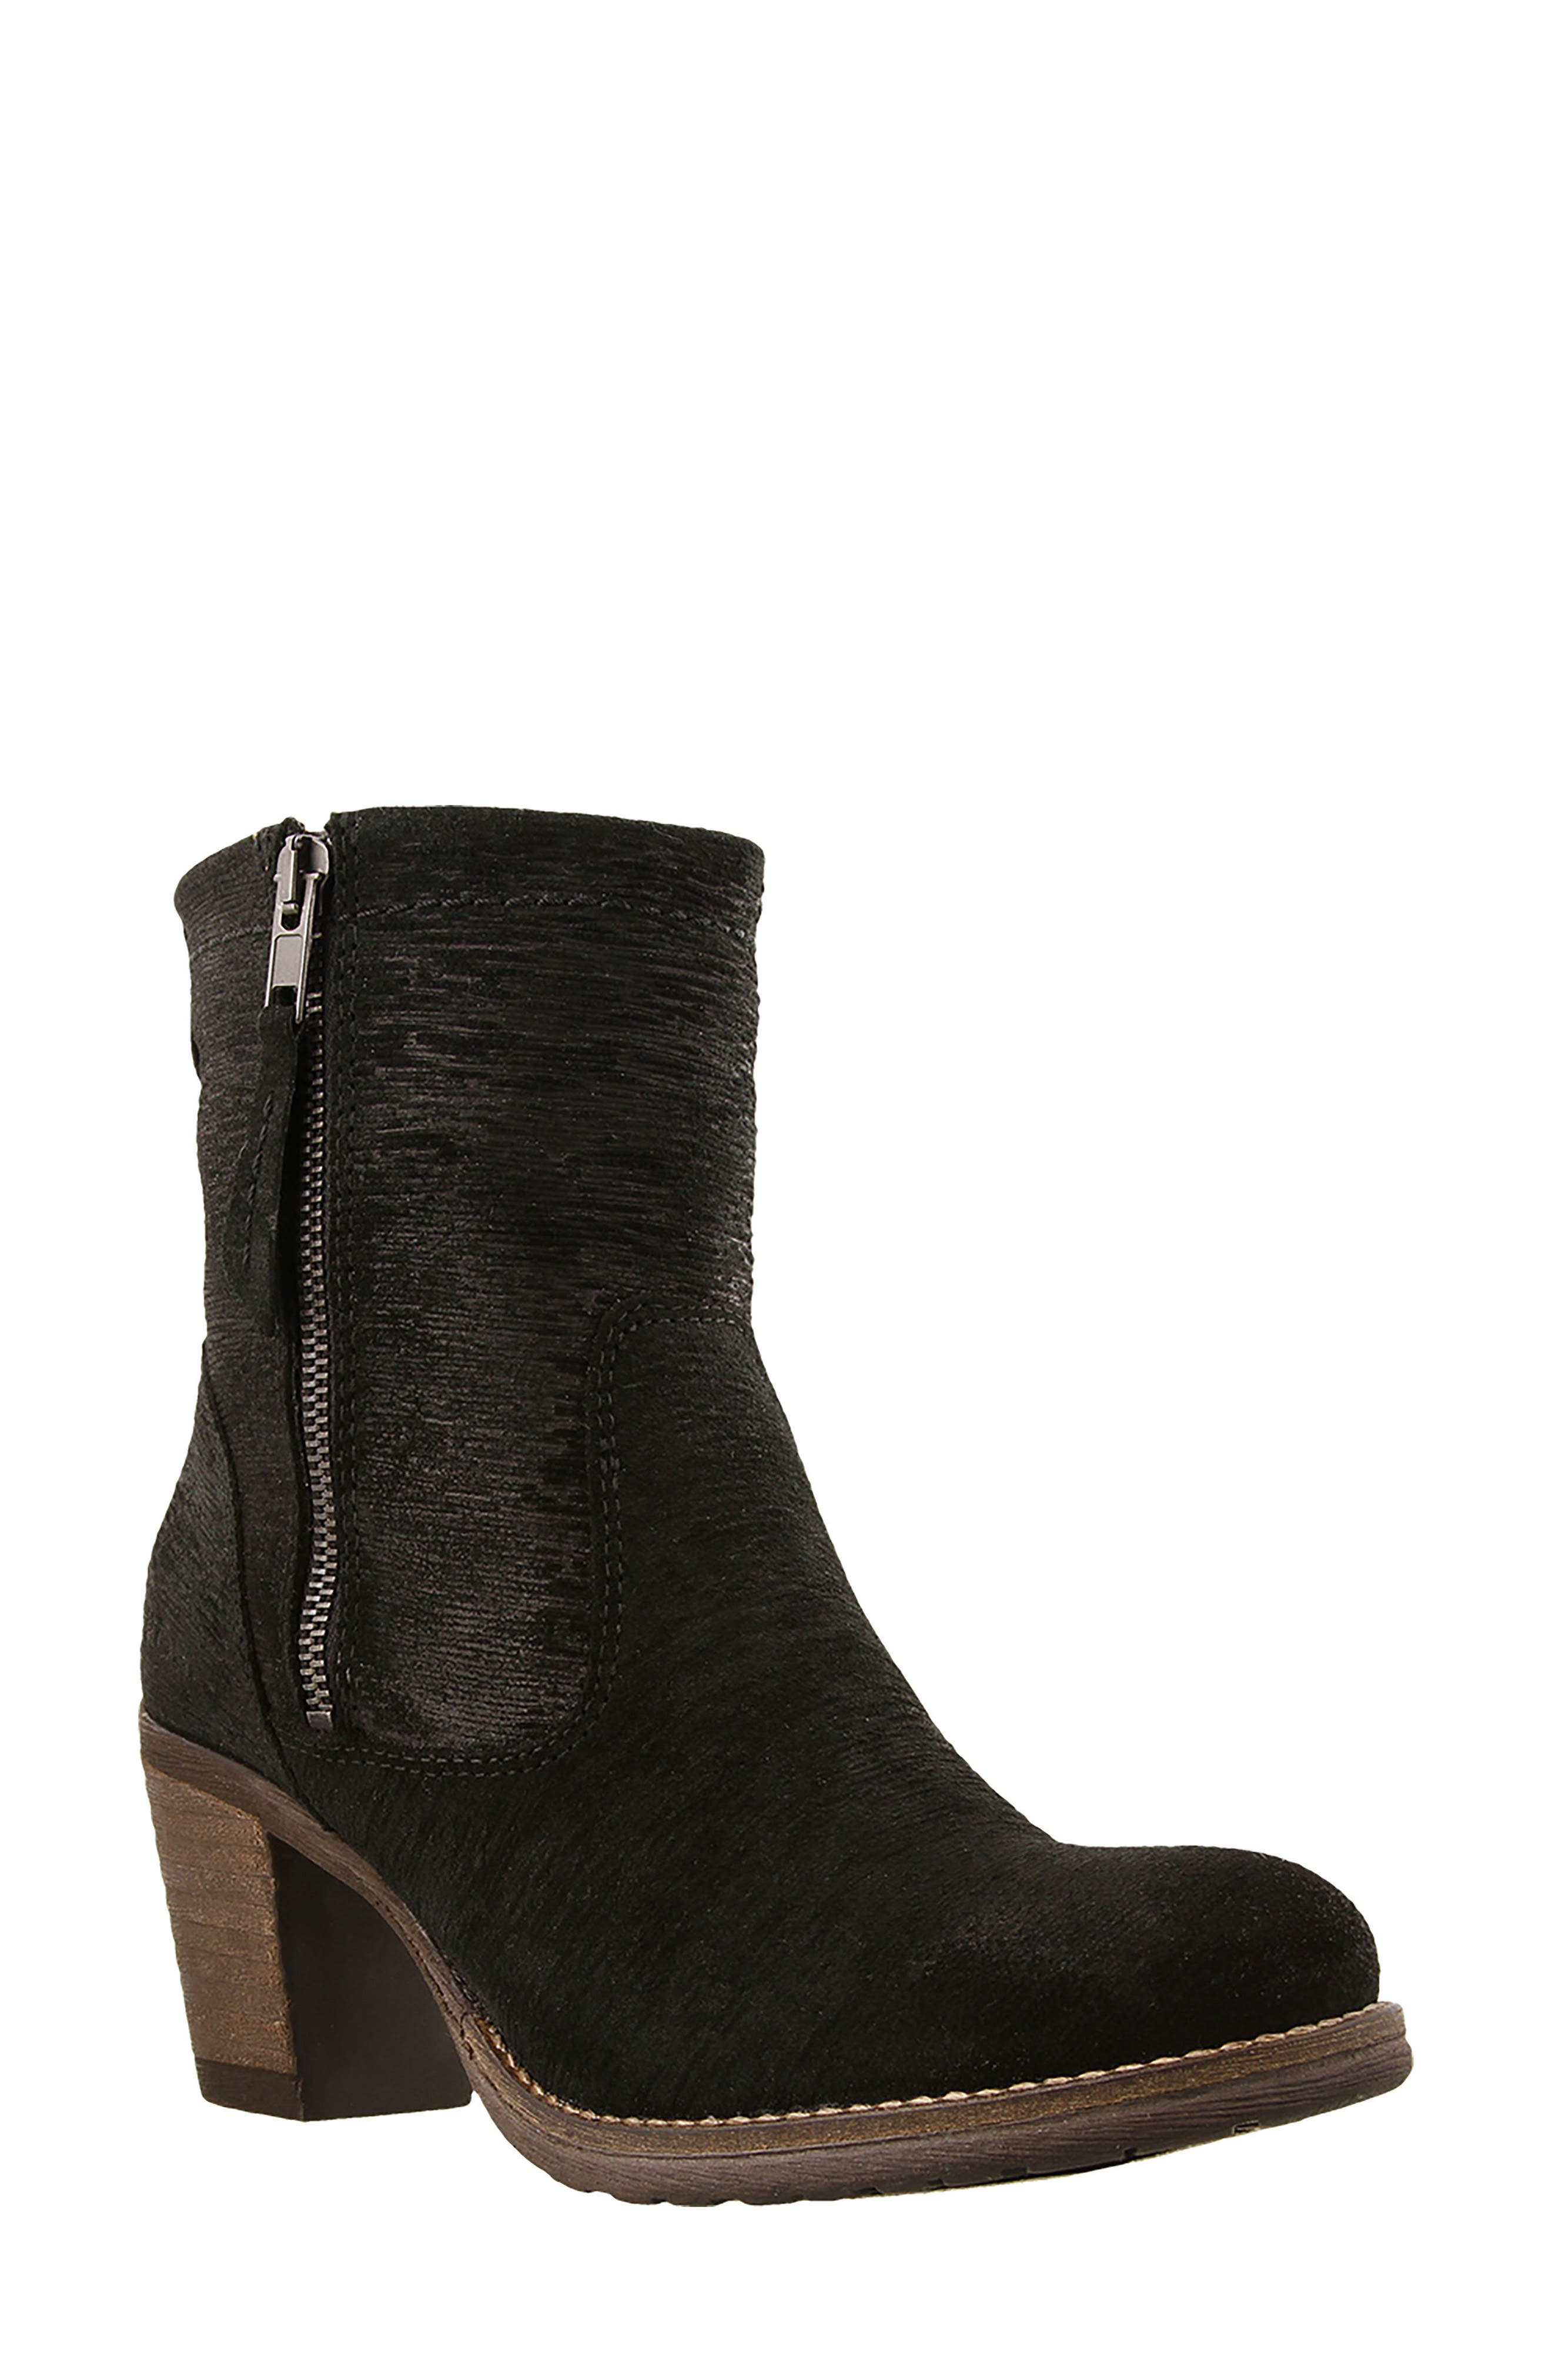 Shaka 2 Embossed Faux Fur Lined Bootie,                             Main thumbnail 1, color,                             Black Emboss Suede